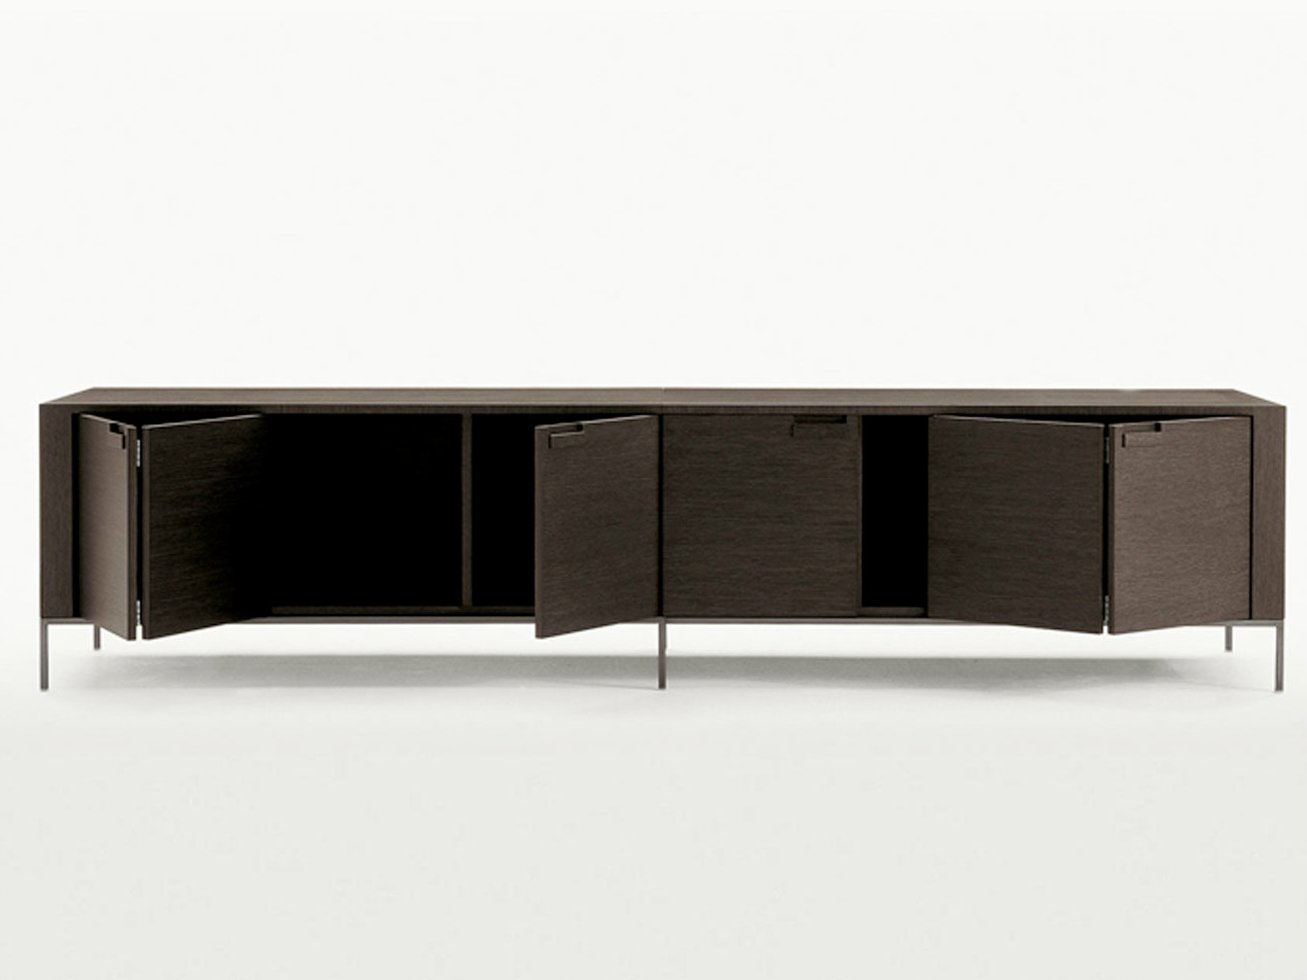 wooden sideboard with doors titanes collection by maxalto a brand of b b italia spa design. Black Bedroom Furniture Sets. Home Design Ideas